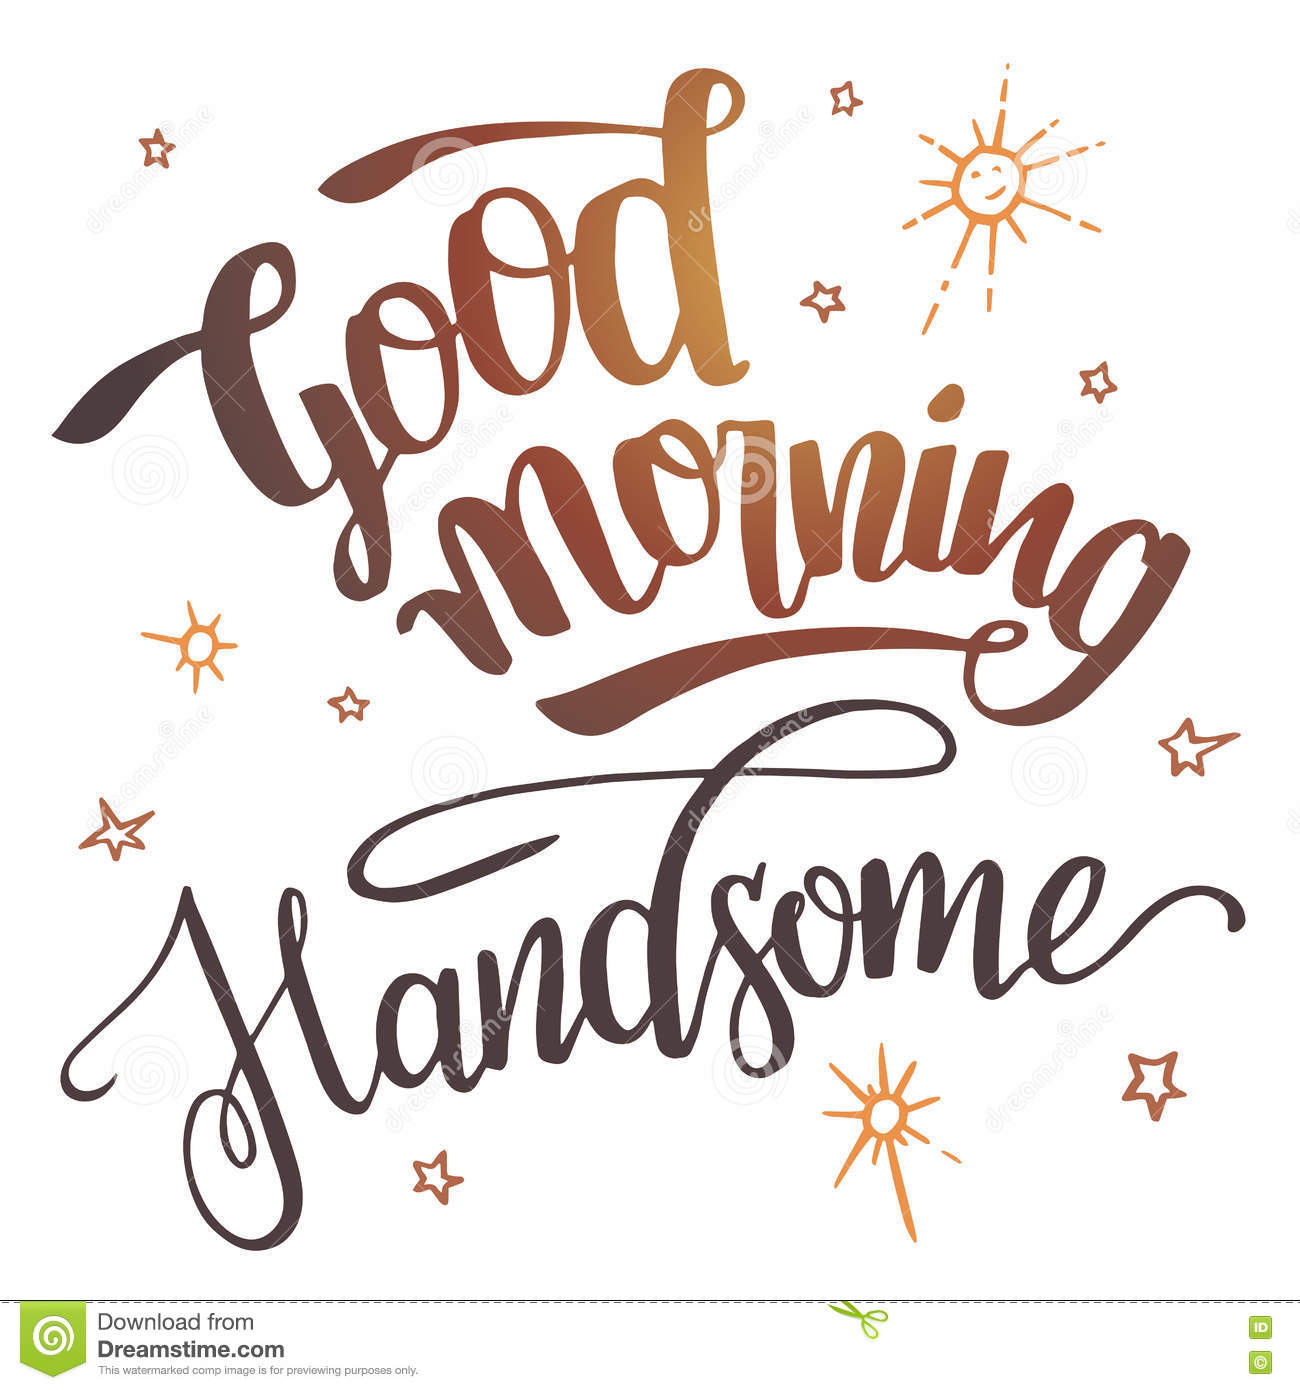 Wedding Good Morning Handsome good morning handsome calligraphy stock vector image 77629491 calligraphy